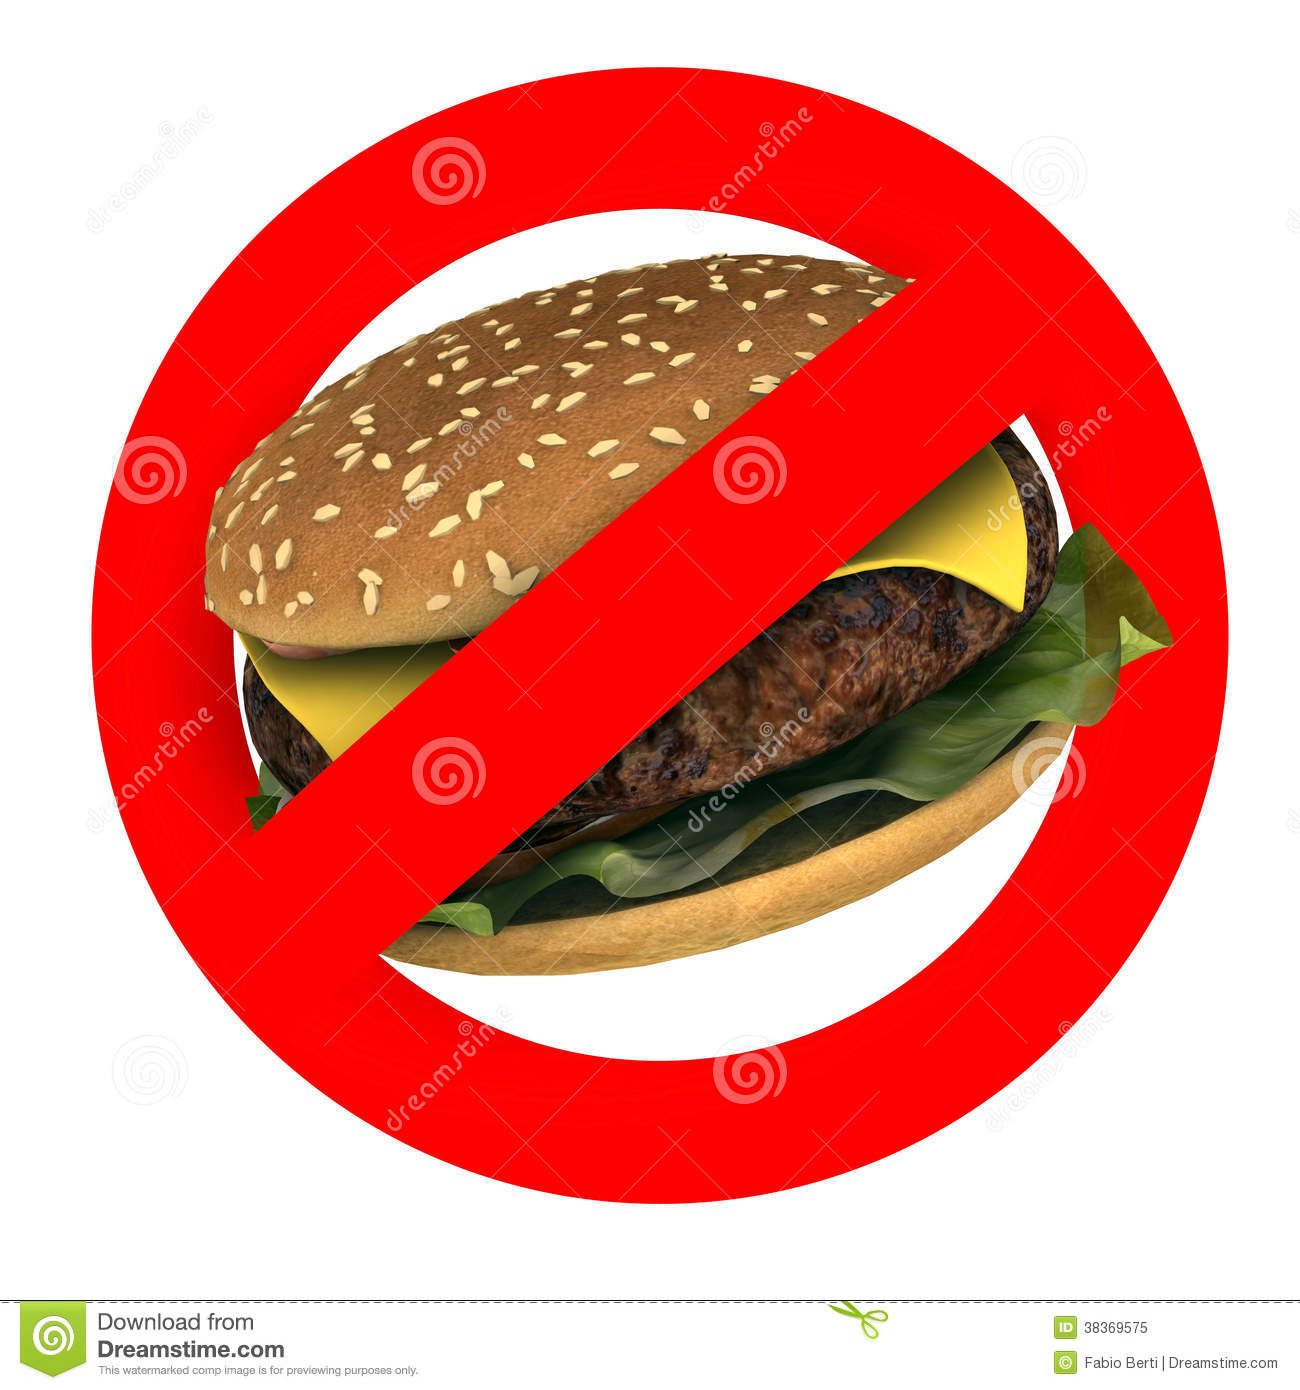 dangers of fast food The occasional fast food meal is unlikely to do much damage to your body if you are eating a balanced diet each day but when you become reliant on fast food your risk of heart disease, becoming overweight, type 2 diabetes, along with many other health conditions increases.